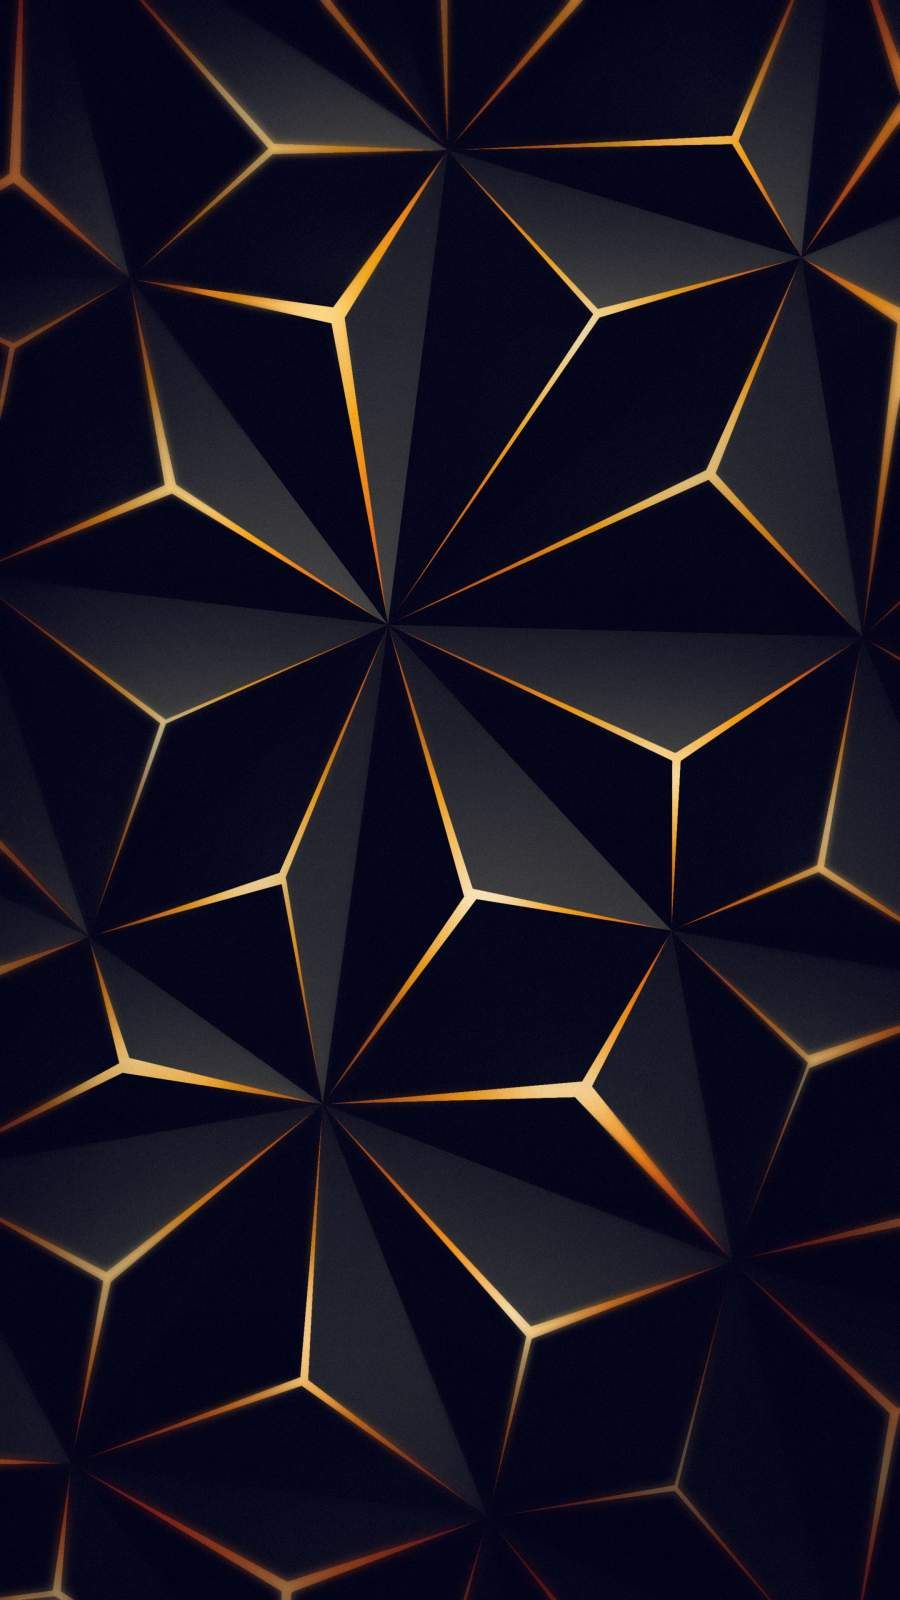 Iphone Wallpapers For Iphone 12 Iphone 11 Iphone X Iphone Xr Iphone 8 Plus High Quality Phone Wallpaper Design Dark Phone Wallpapers Galaxy Phone Wallpaper 3d wallpaper iphone x